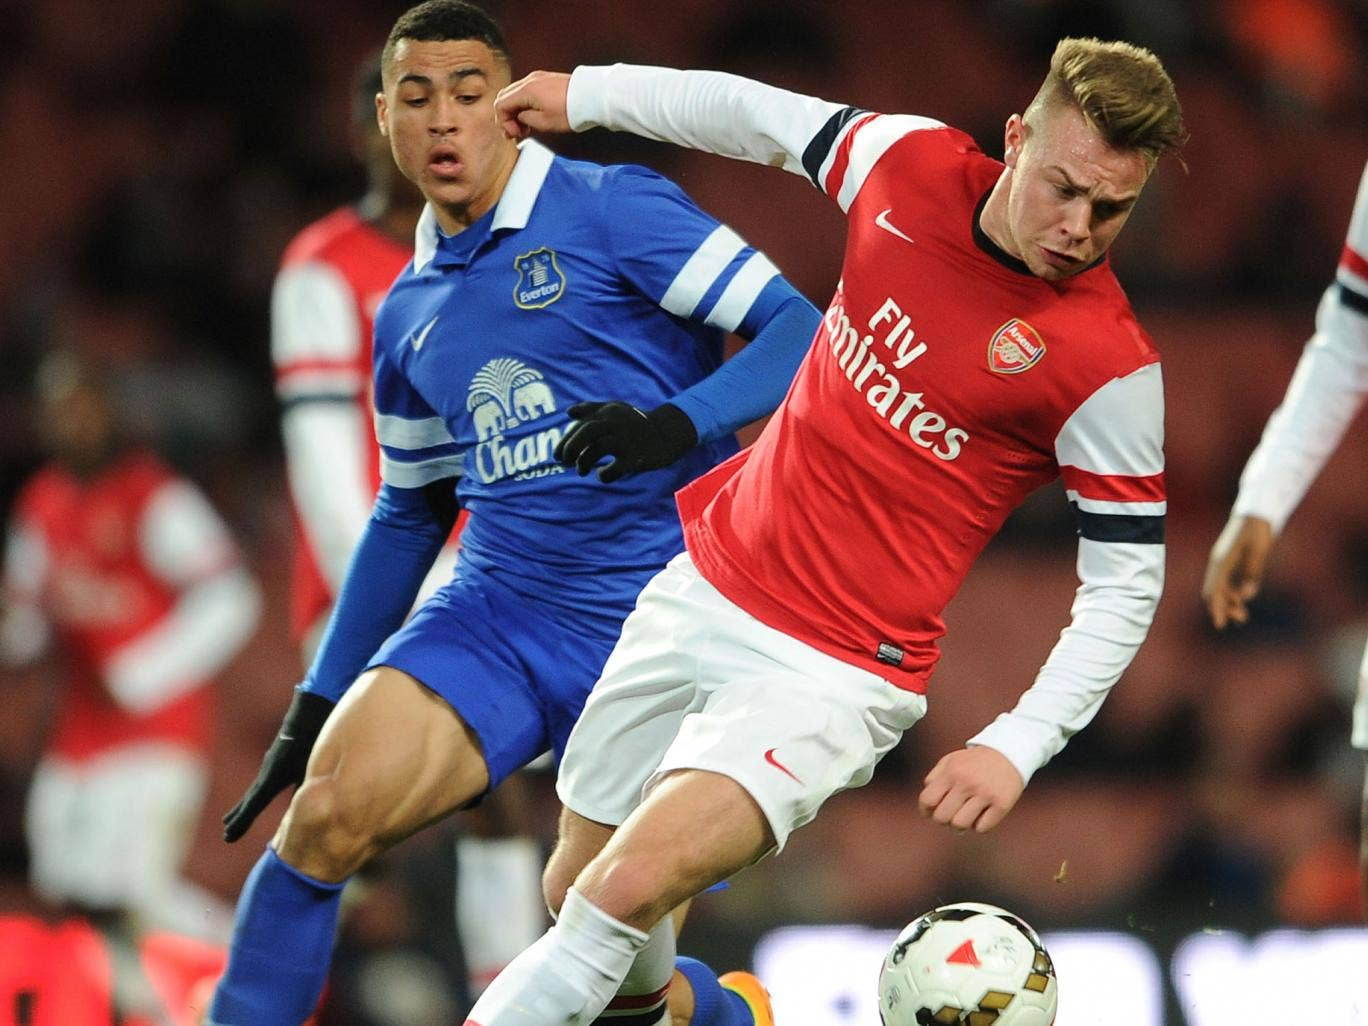 Jack Jebb (right) fends off Everton's Courtney Duffus during Arsenal's 3-1 FA Youth Cup quarter-final win at the Emirates Stadium